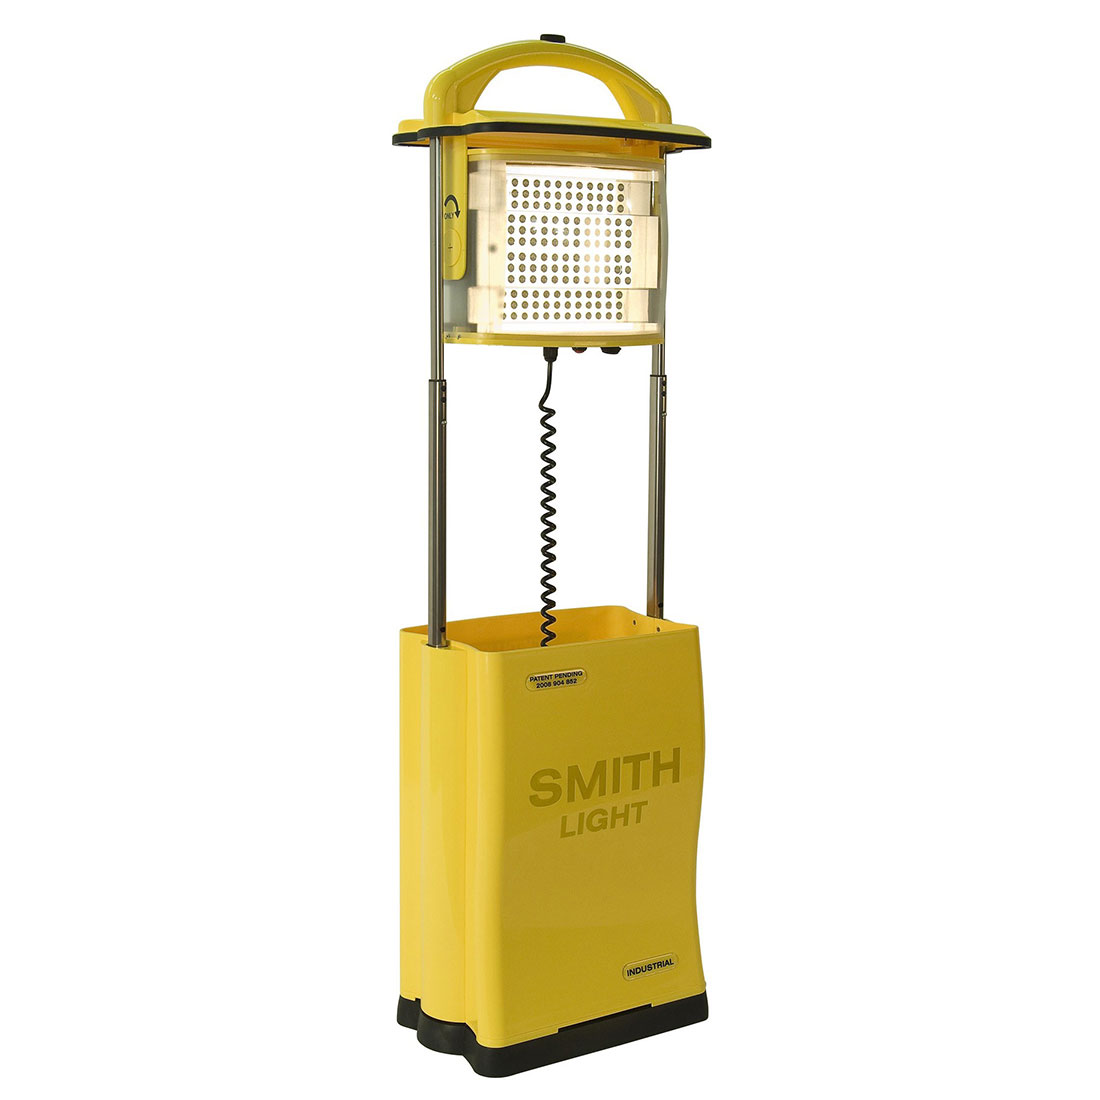 Smithlight Led Worklight